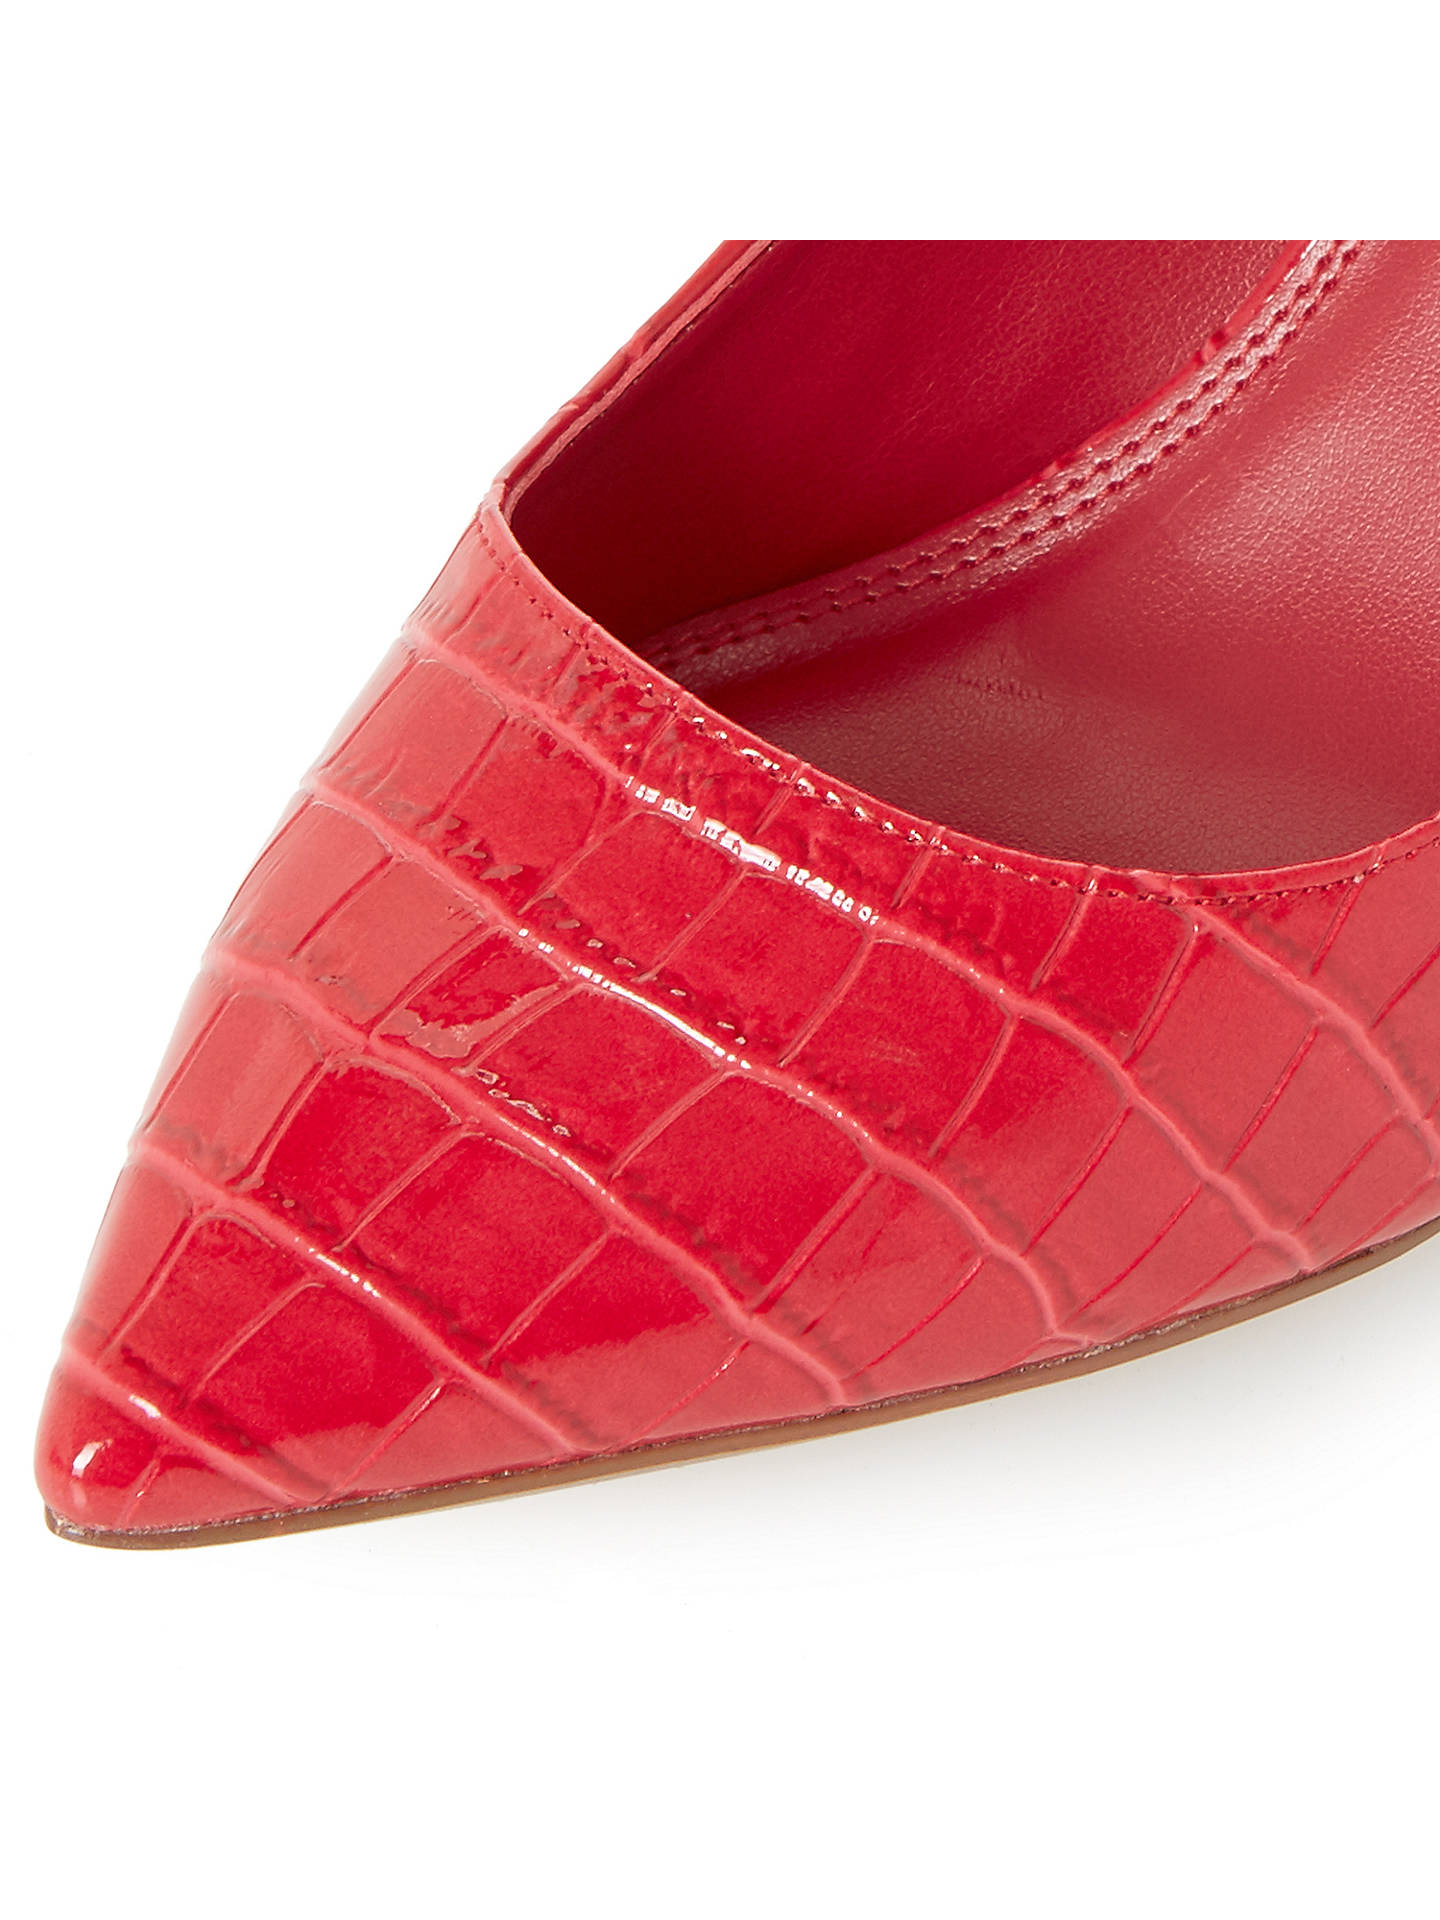 BuyDune Aurrora Pointed Toe Court Shoes, Red, 3 Online at johnlewis.com